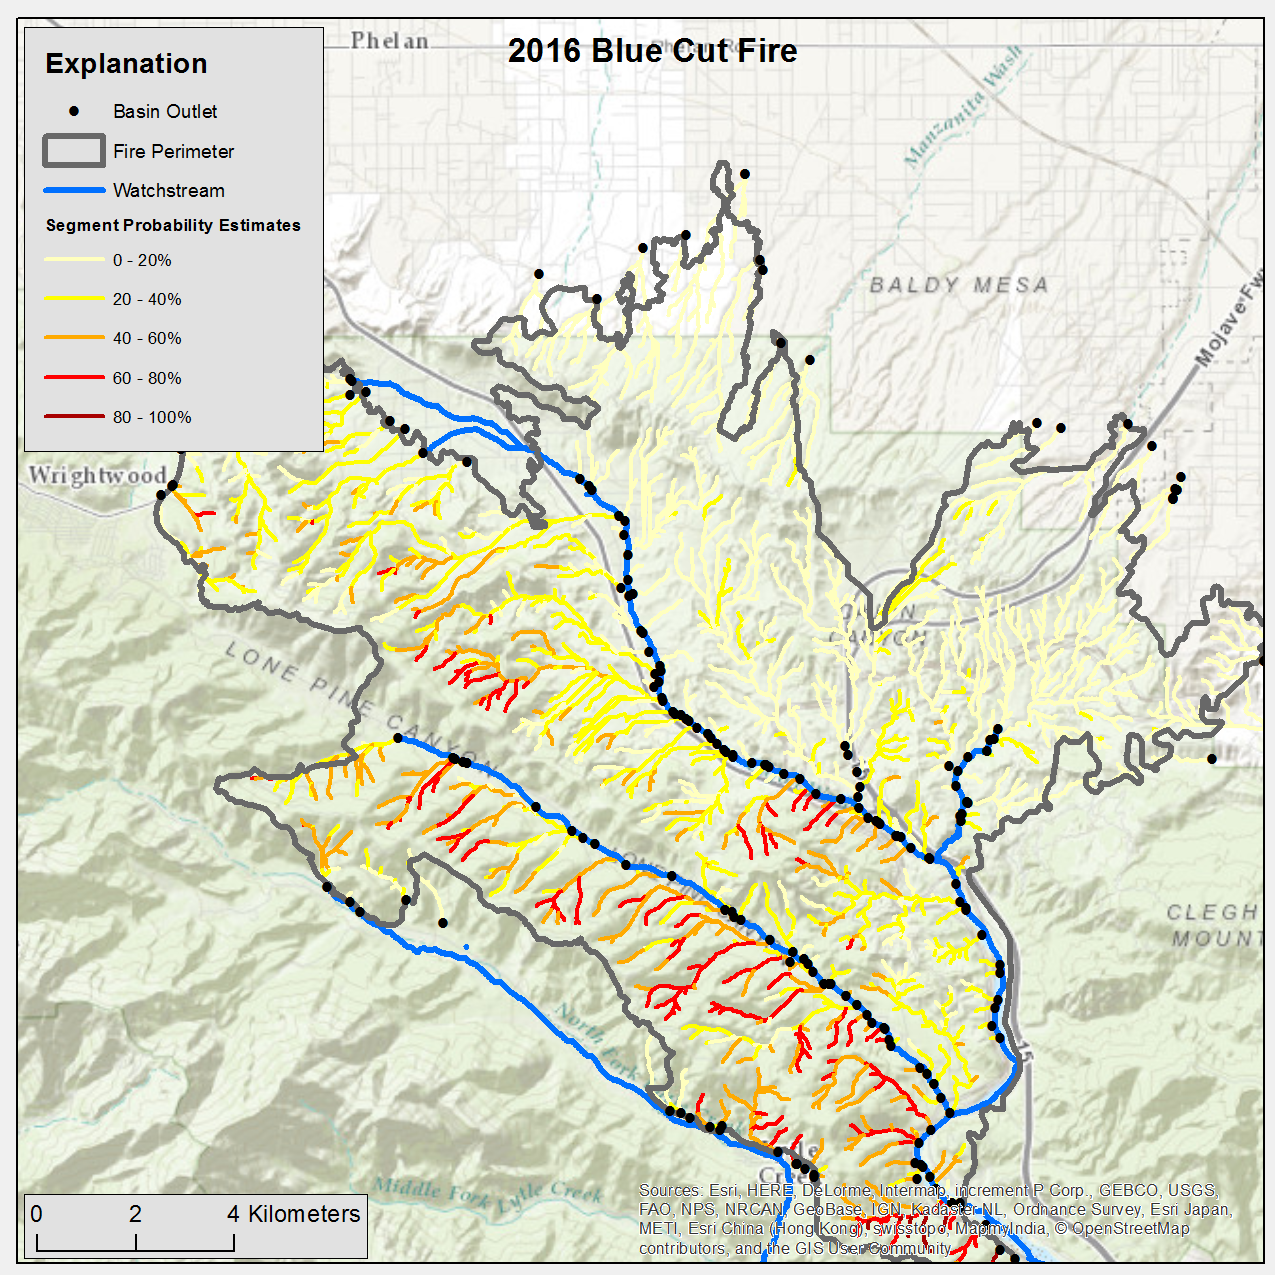 Emergency essment of Post-Fire Debris-Flow Hazards on placer fire map, orlando fire map, alpine county fire map, carmel valley fire map, fallbrook fire map, bernardo fire map, cajon fire map, baltimore fire map, lakeside fire map, 2014 san diego fire map, trinity county fire map, mohave fire map, rancho cucamonga fire map, chula vista fire map, burney fire map, austin fire map, ukiah fire map, monterey fire map, la habra fire map, antioch fire map,